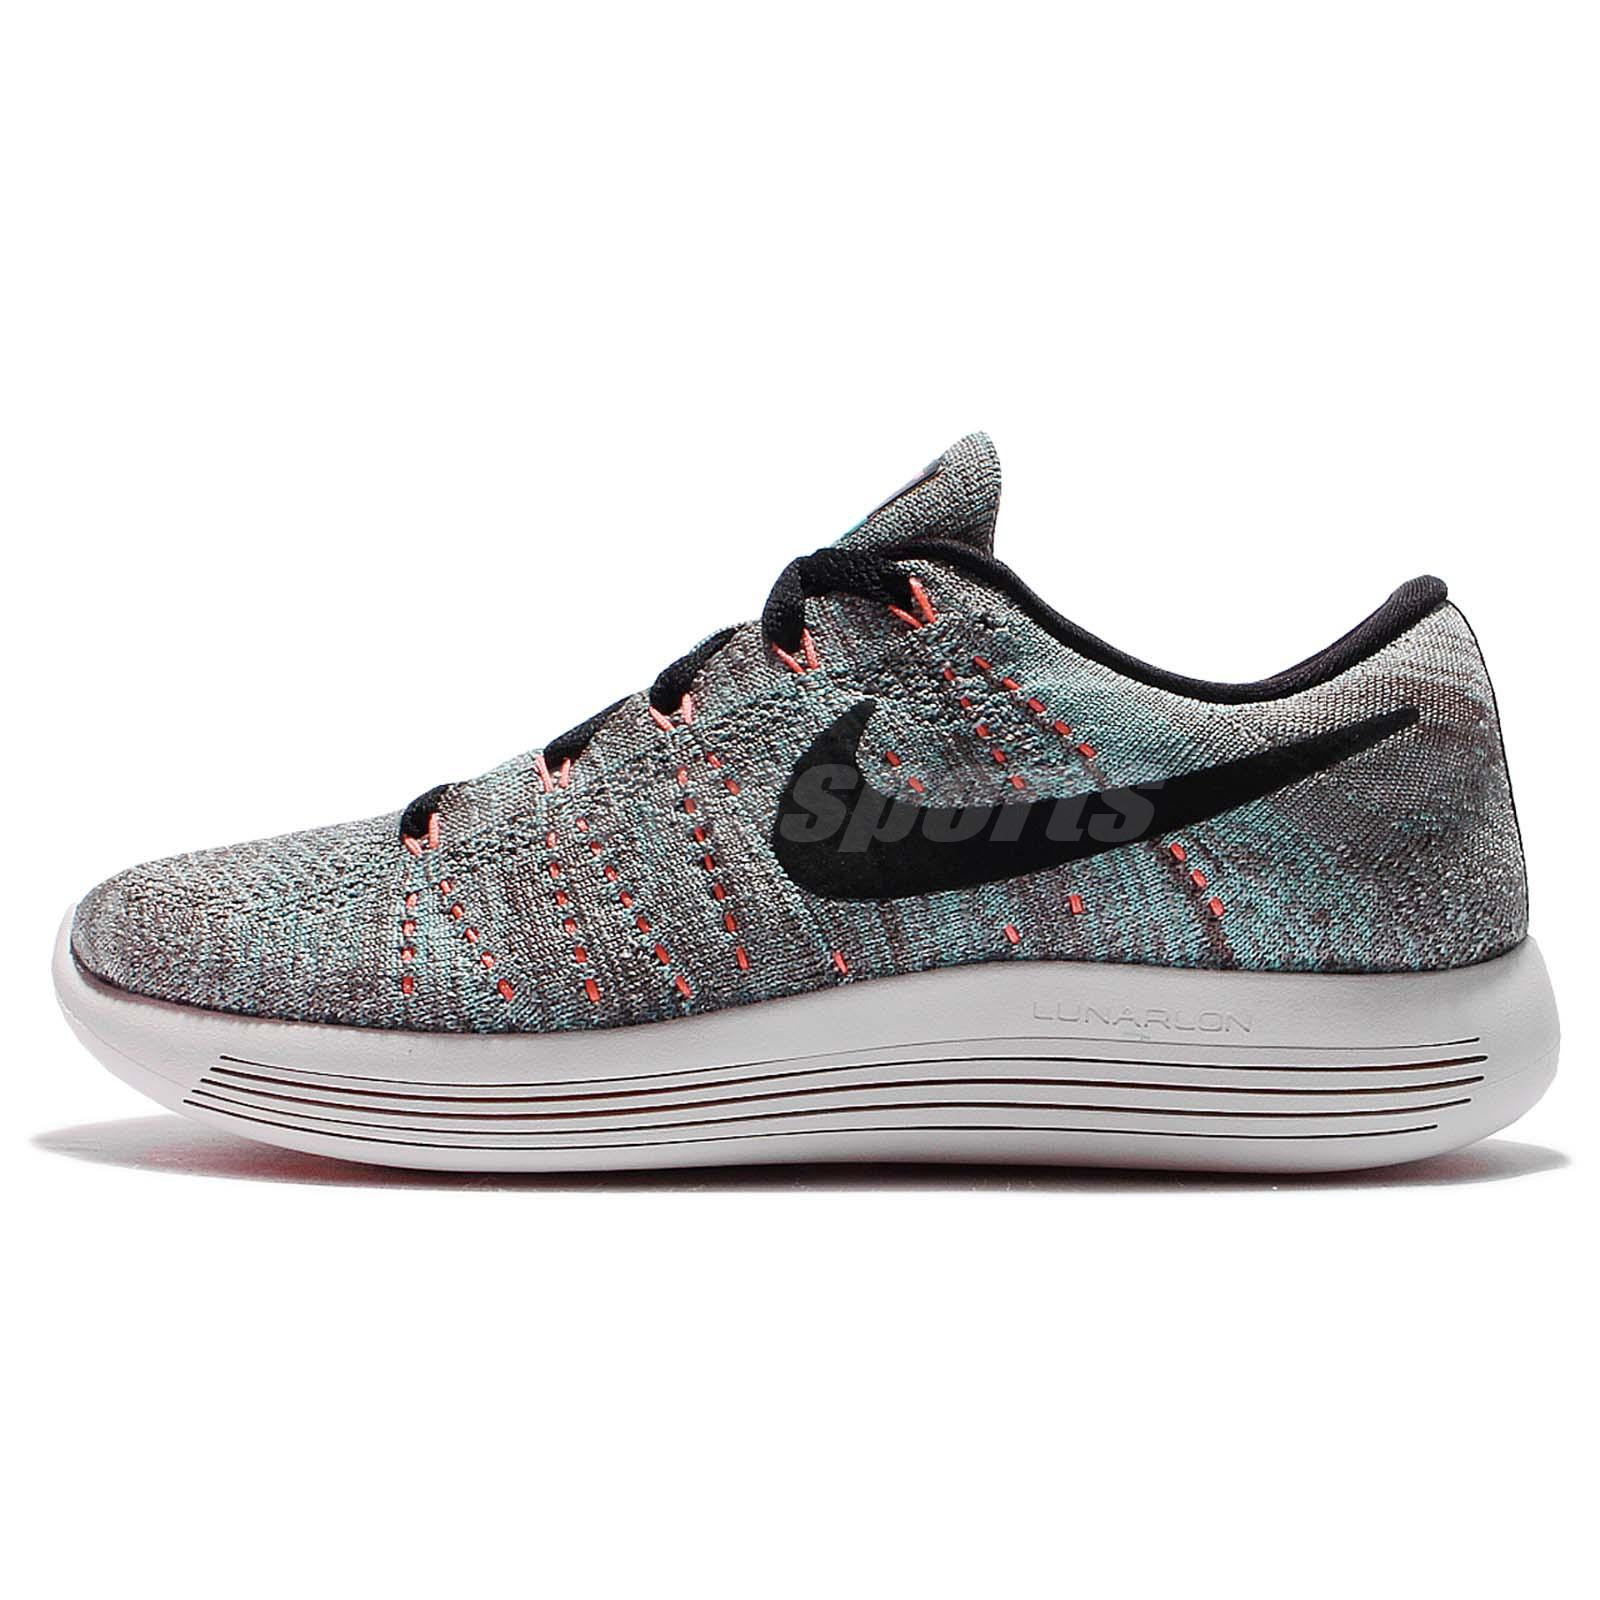 442ff75b1fa Nike Wmns Lunarepic Low Flyknit Multi-Color Women Running Shoes 843765-200